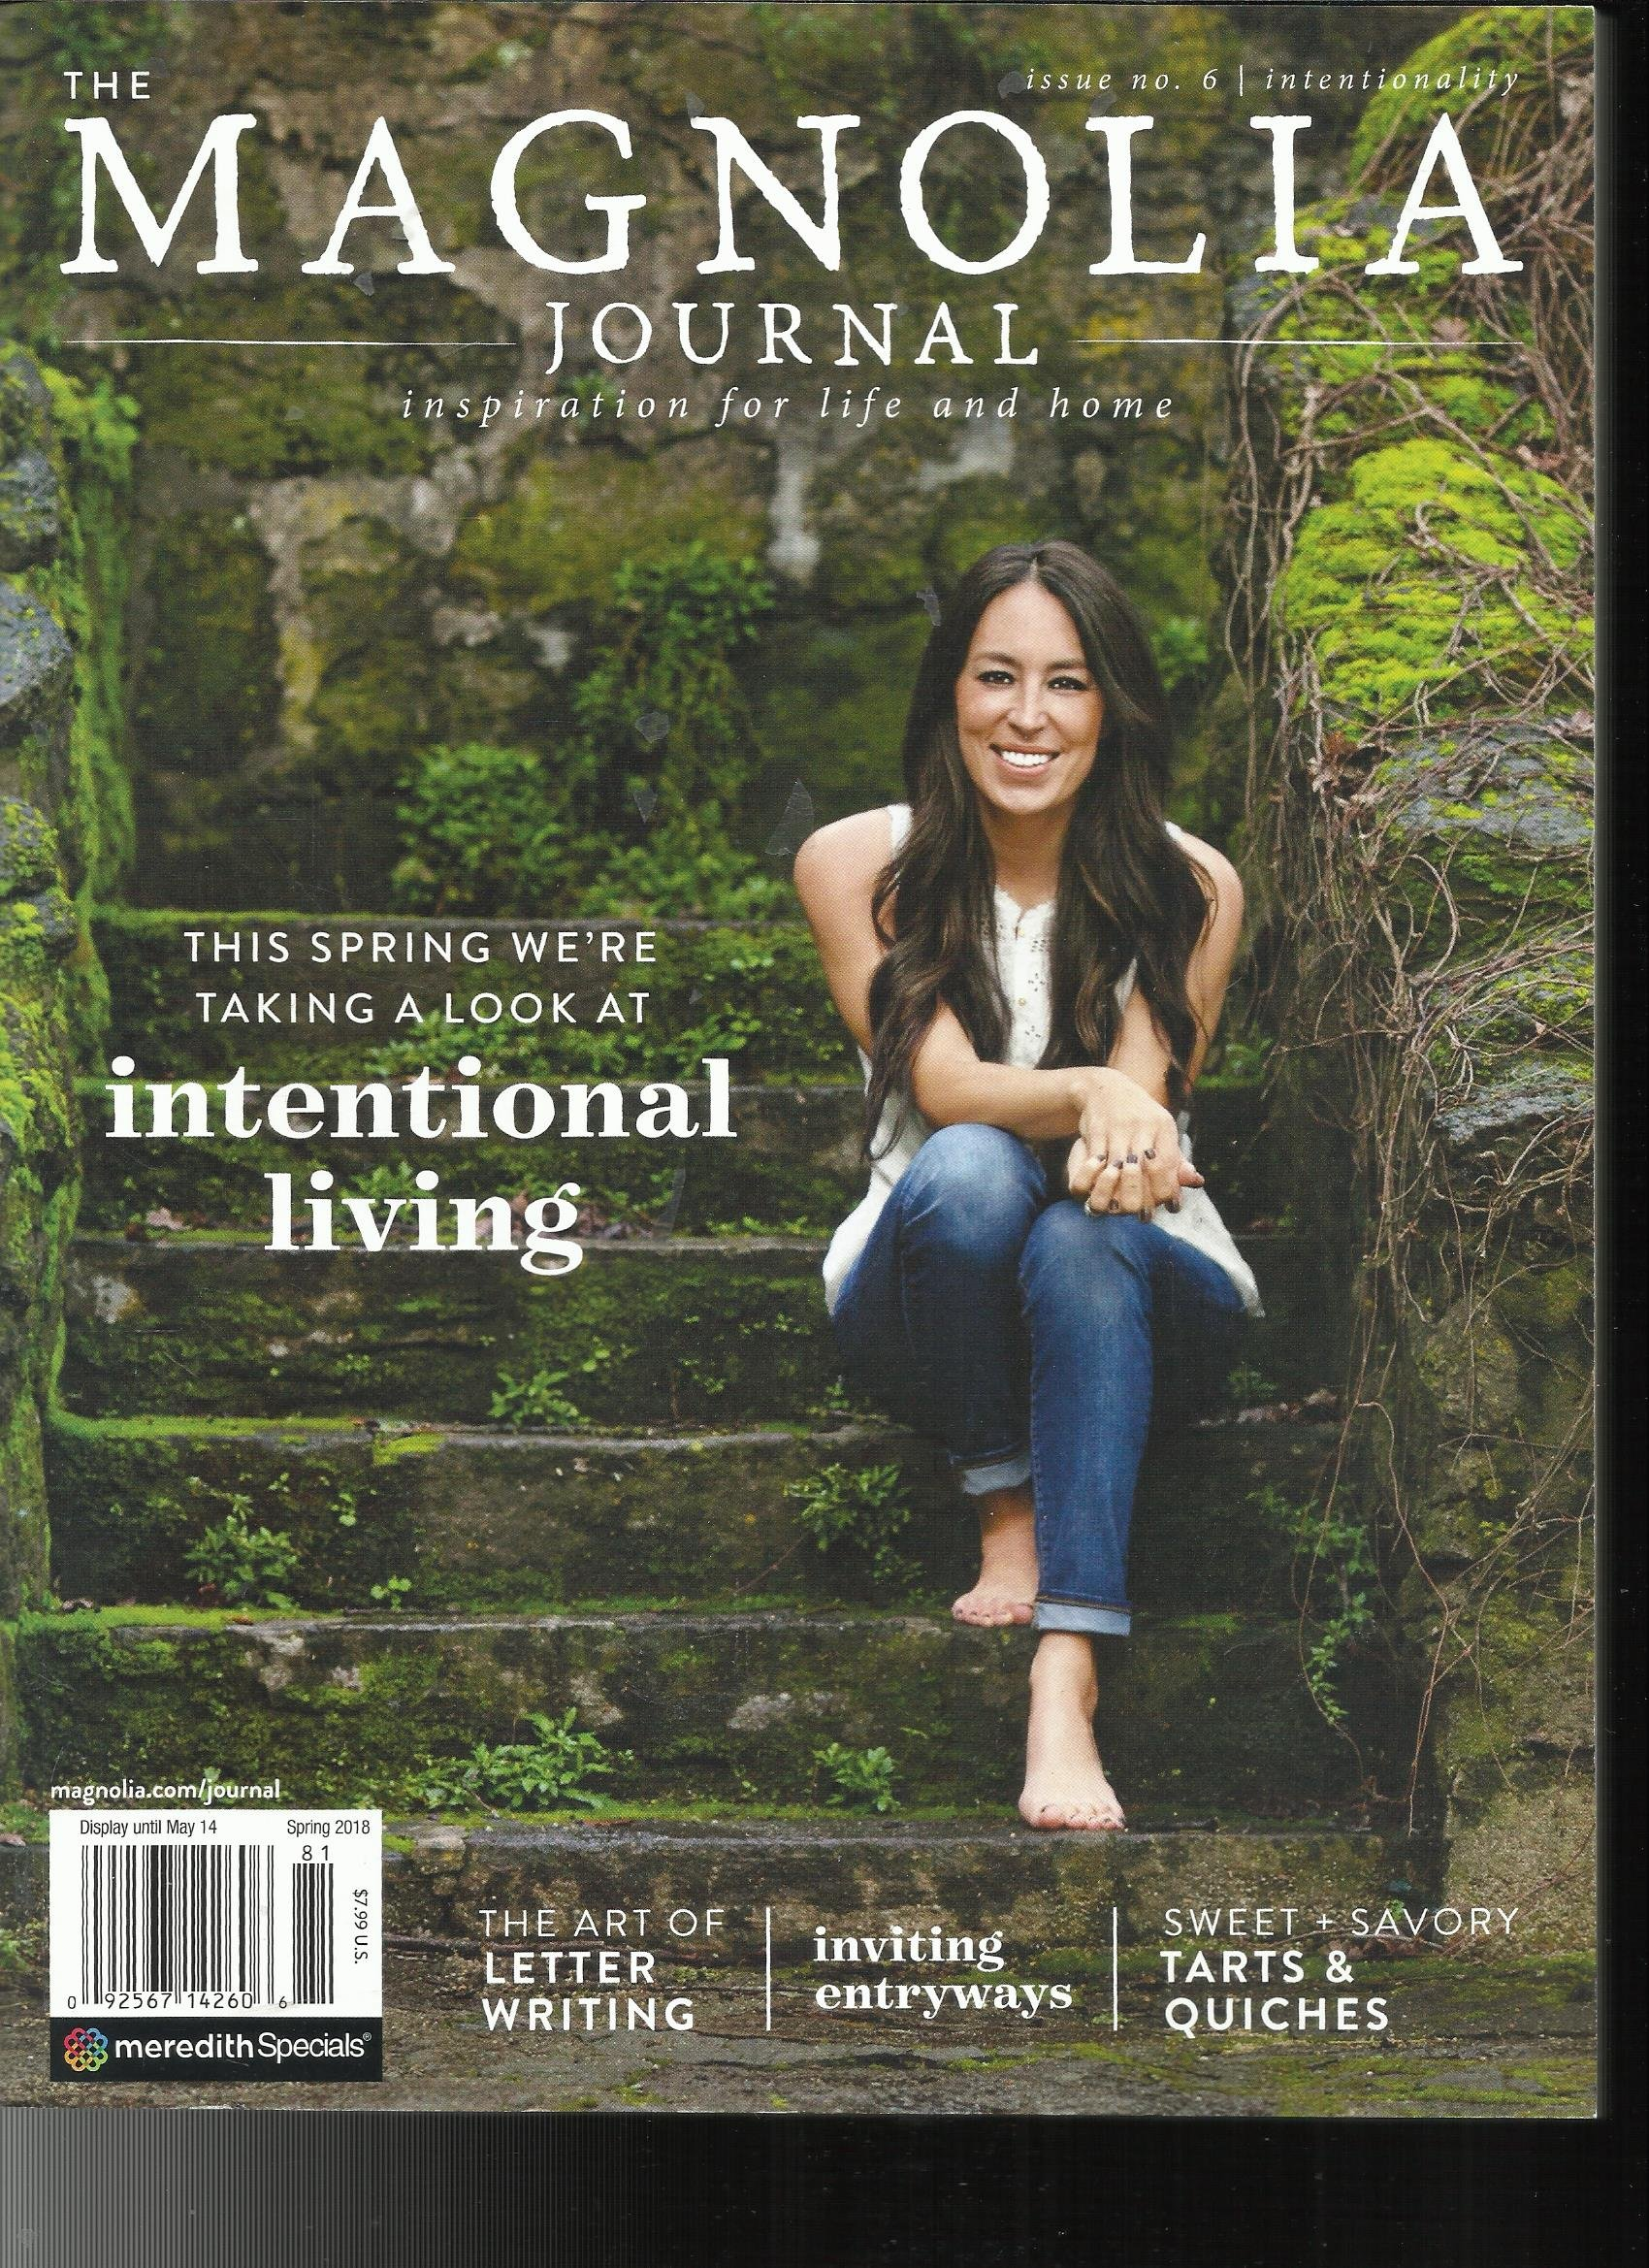 THE MAGNOLIA JOURNAL, INSPIRATION FOR LIFE AND HOME SPRING, 2018 ISSUE NO. 06